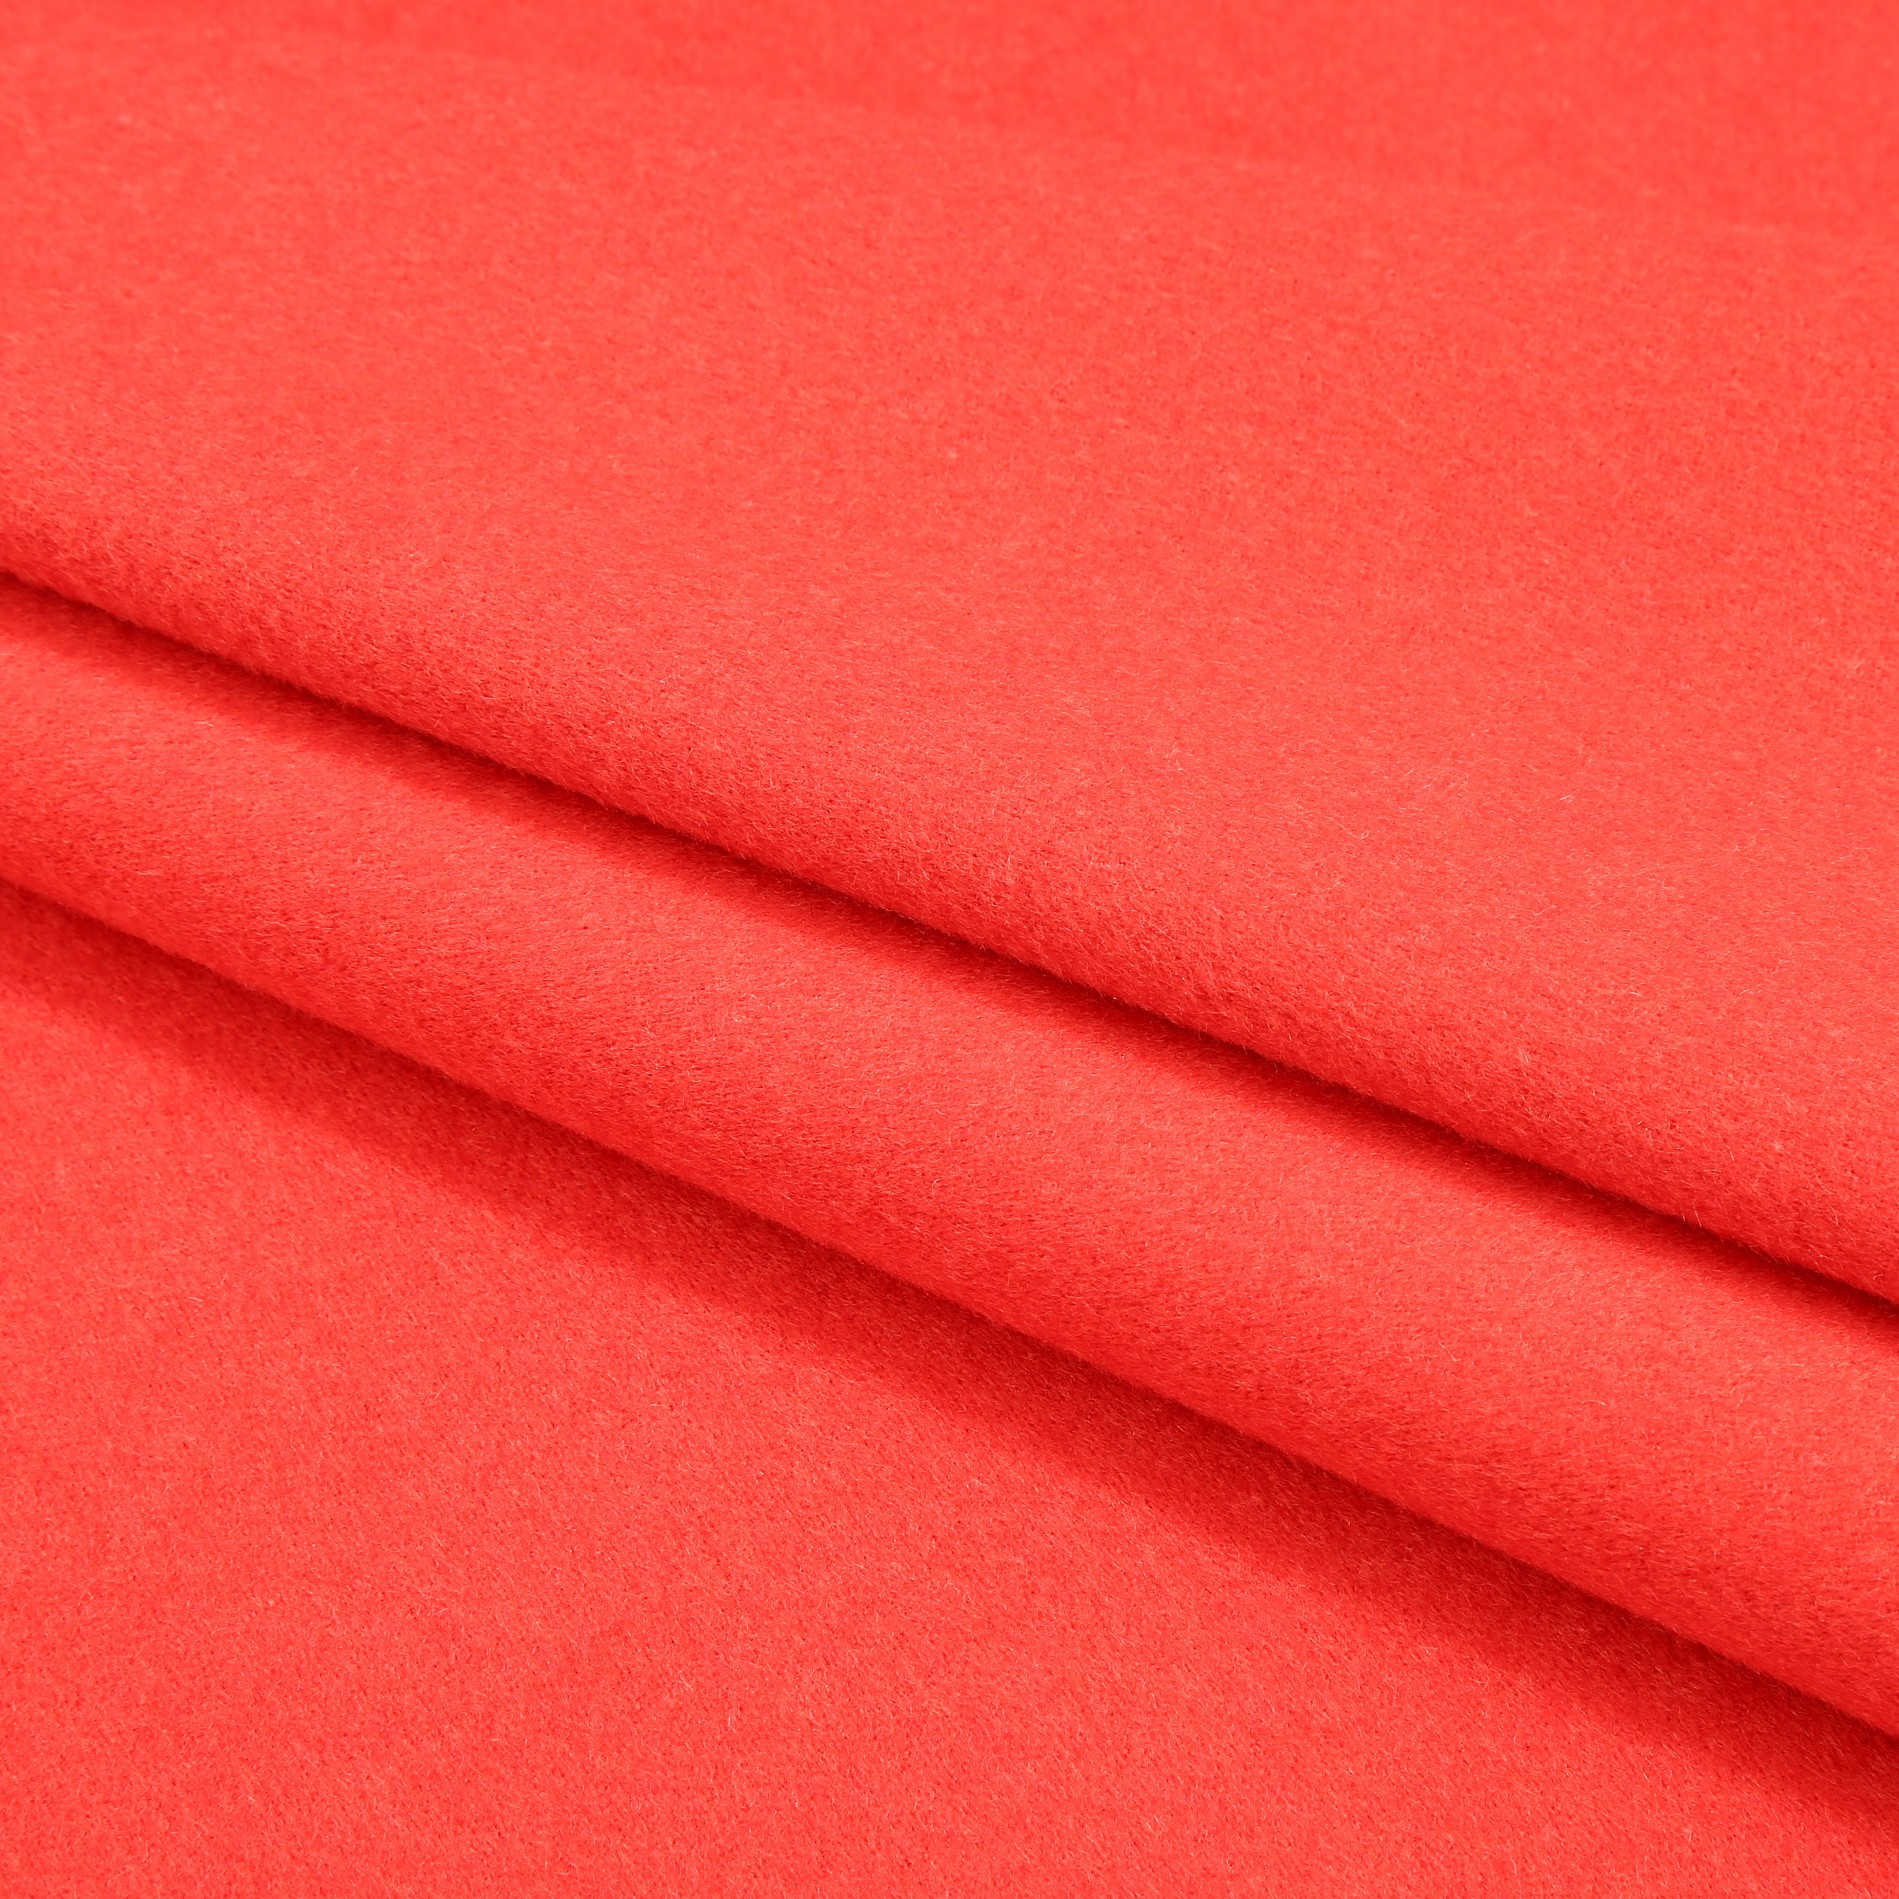 wool polyester overcoat fabrics Manufacturers, wool polyester overcoat fabrics Factory, Supply wool polyester overcoat fabrics